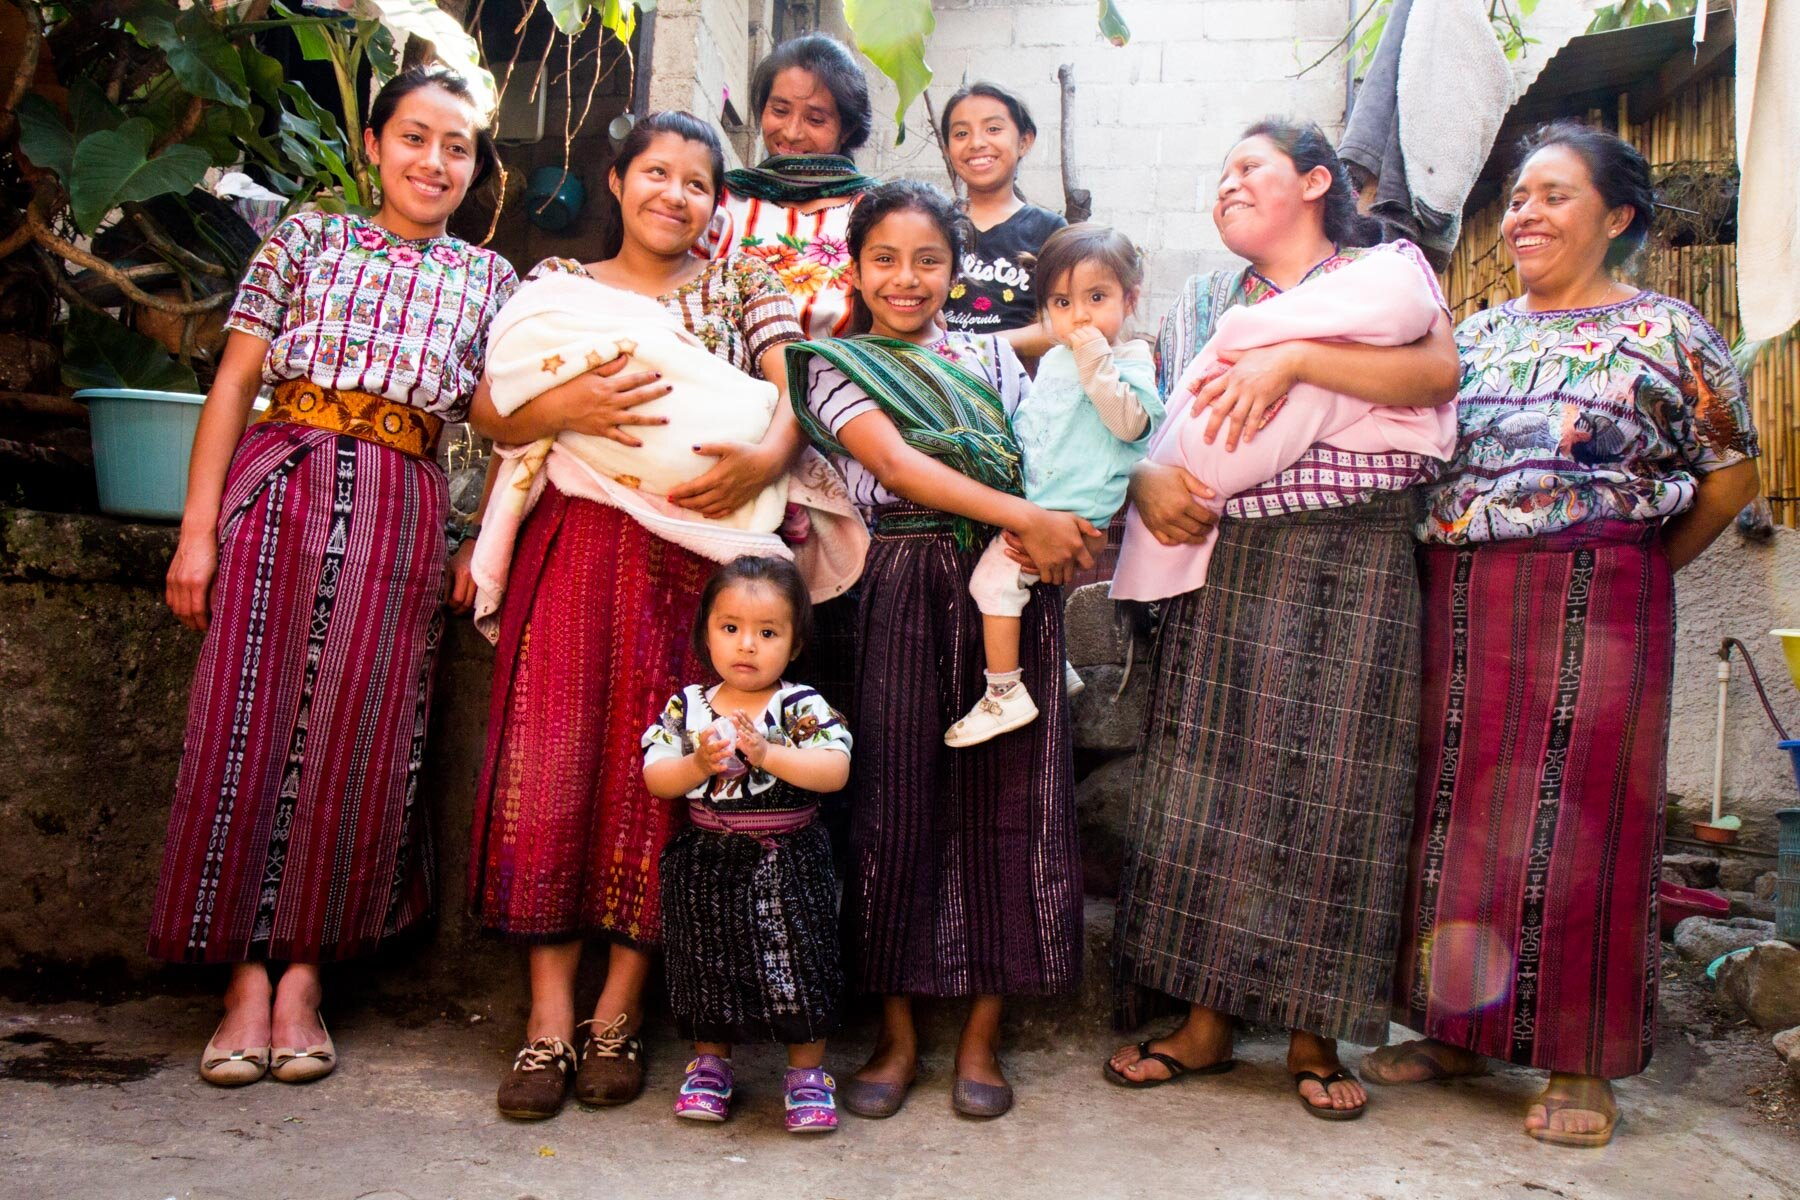 Mothers and their children in Guatemala who have received care from Saving Mothers.